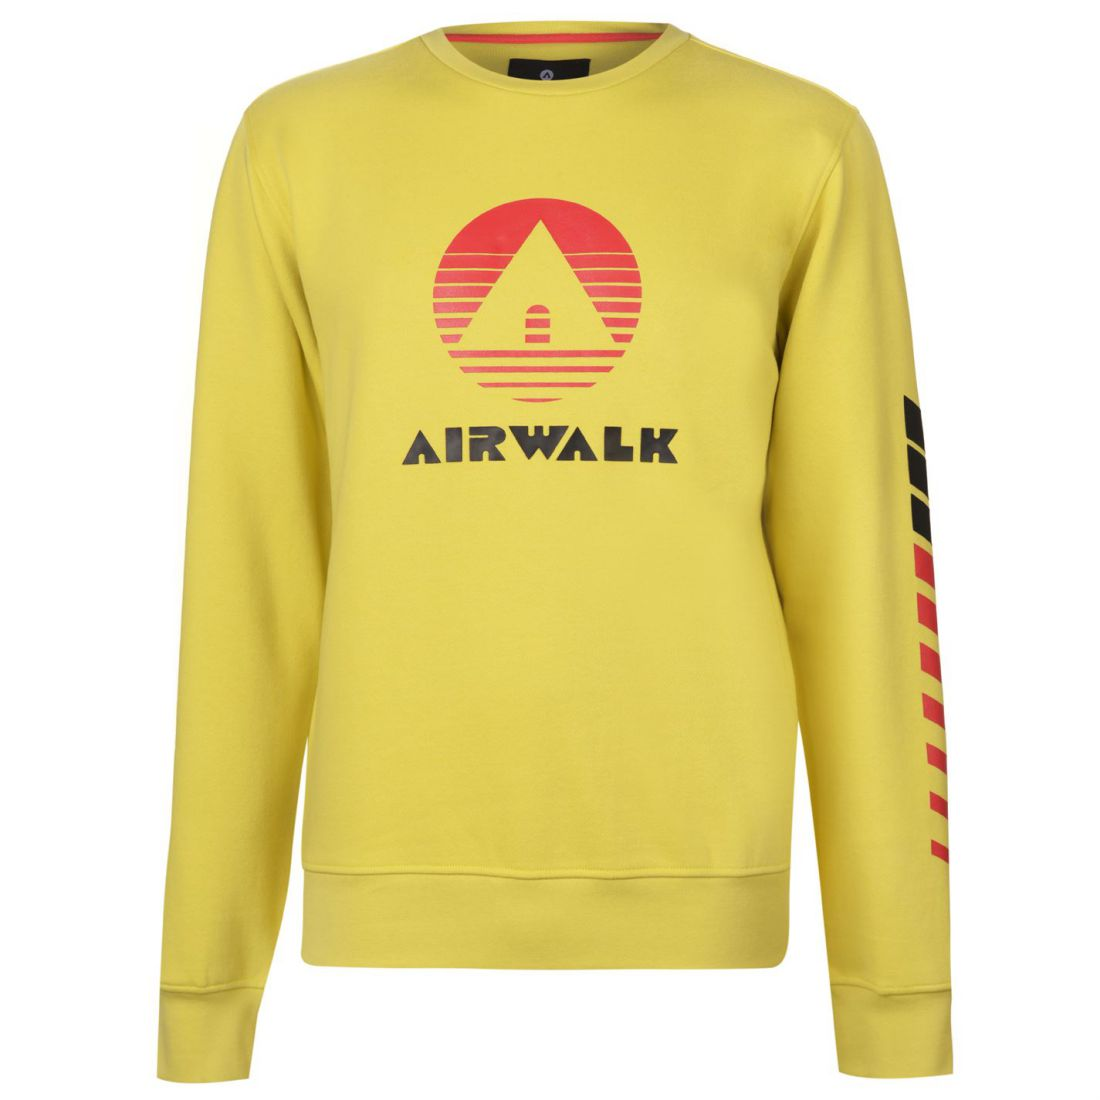 Airwalk Retro Pullover Mens Gents Crew Jumper Full Length Sleeve Neck Pattern Angenehm Im Nachgeschmack